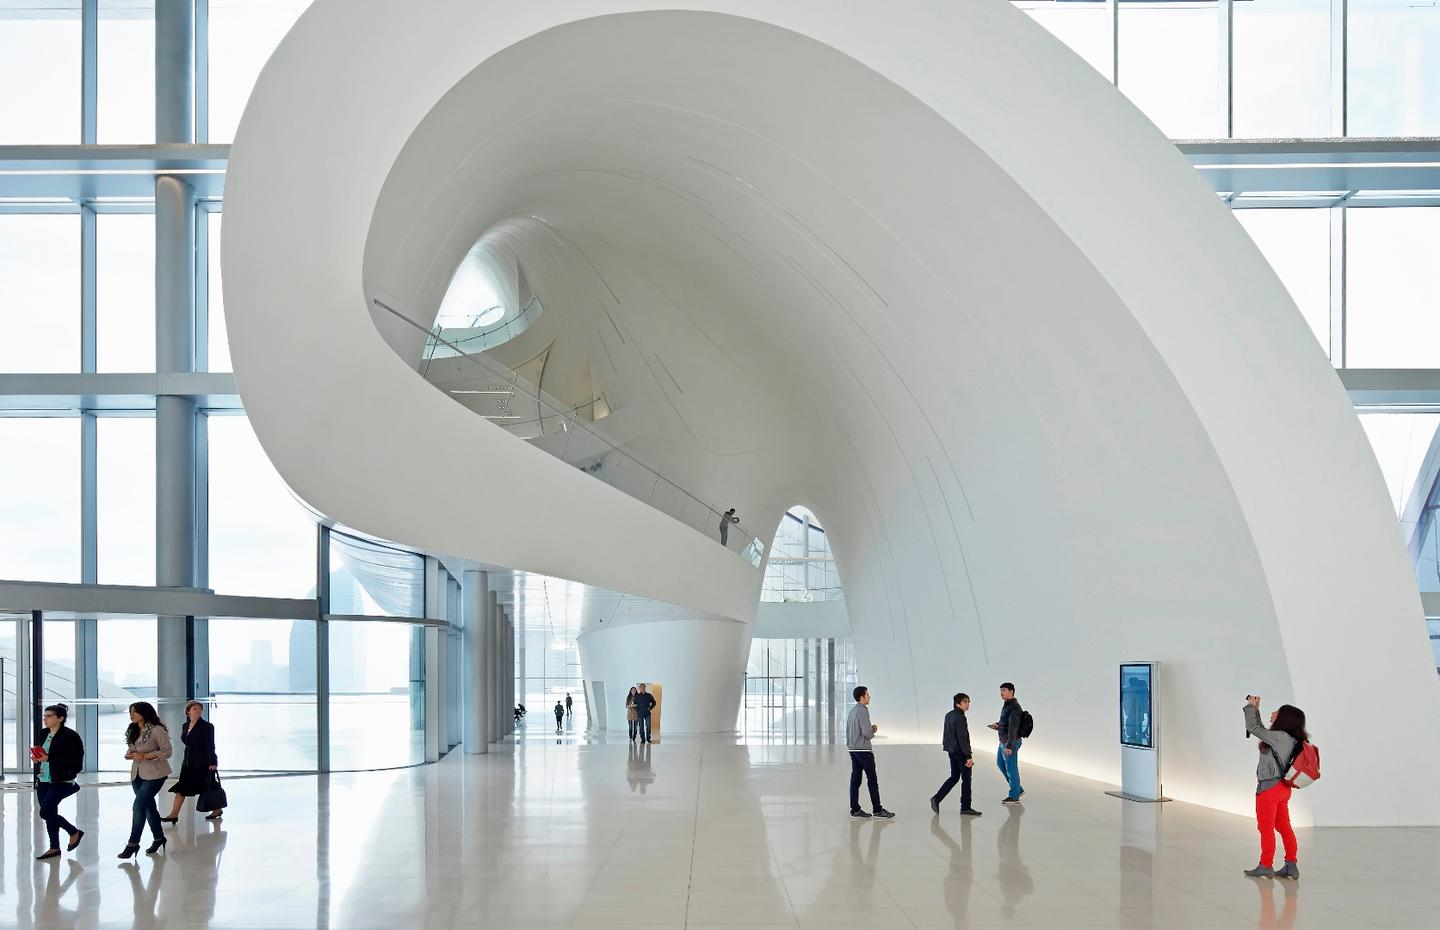 We've written about Zaha Hadid's Heydar Aliyev Centre several times and it remains a magnificent building